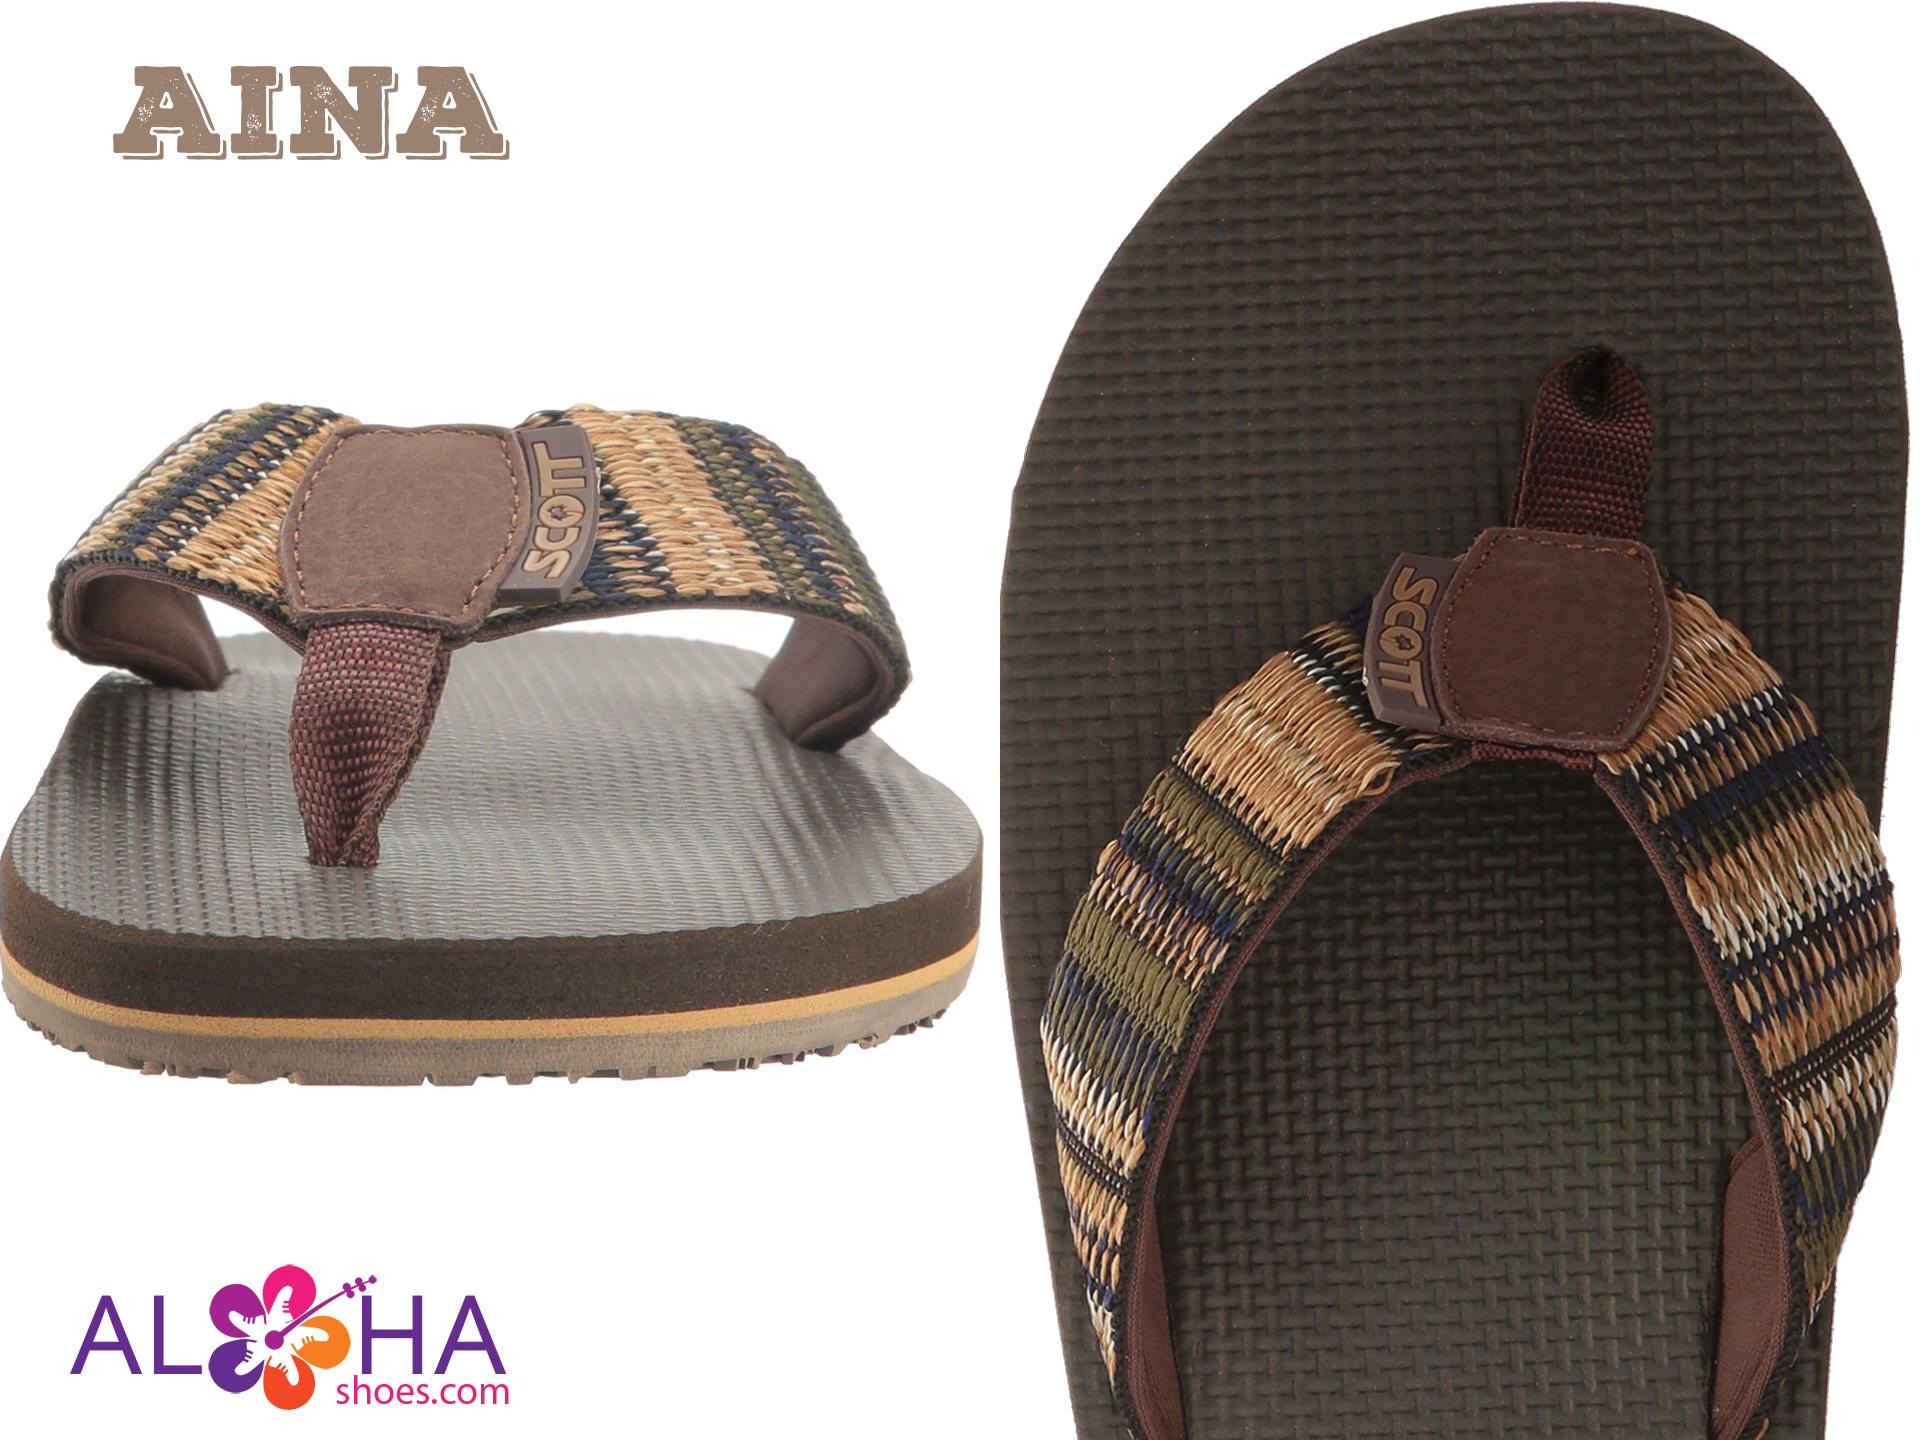 fb63c472d75af Men s Aina Rubber Slippers With Woven Strap - AlohaShoes.com. Men s Aina  Rubber Slippers With Woven Strap - AlohaShoes.com